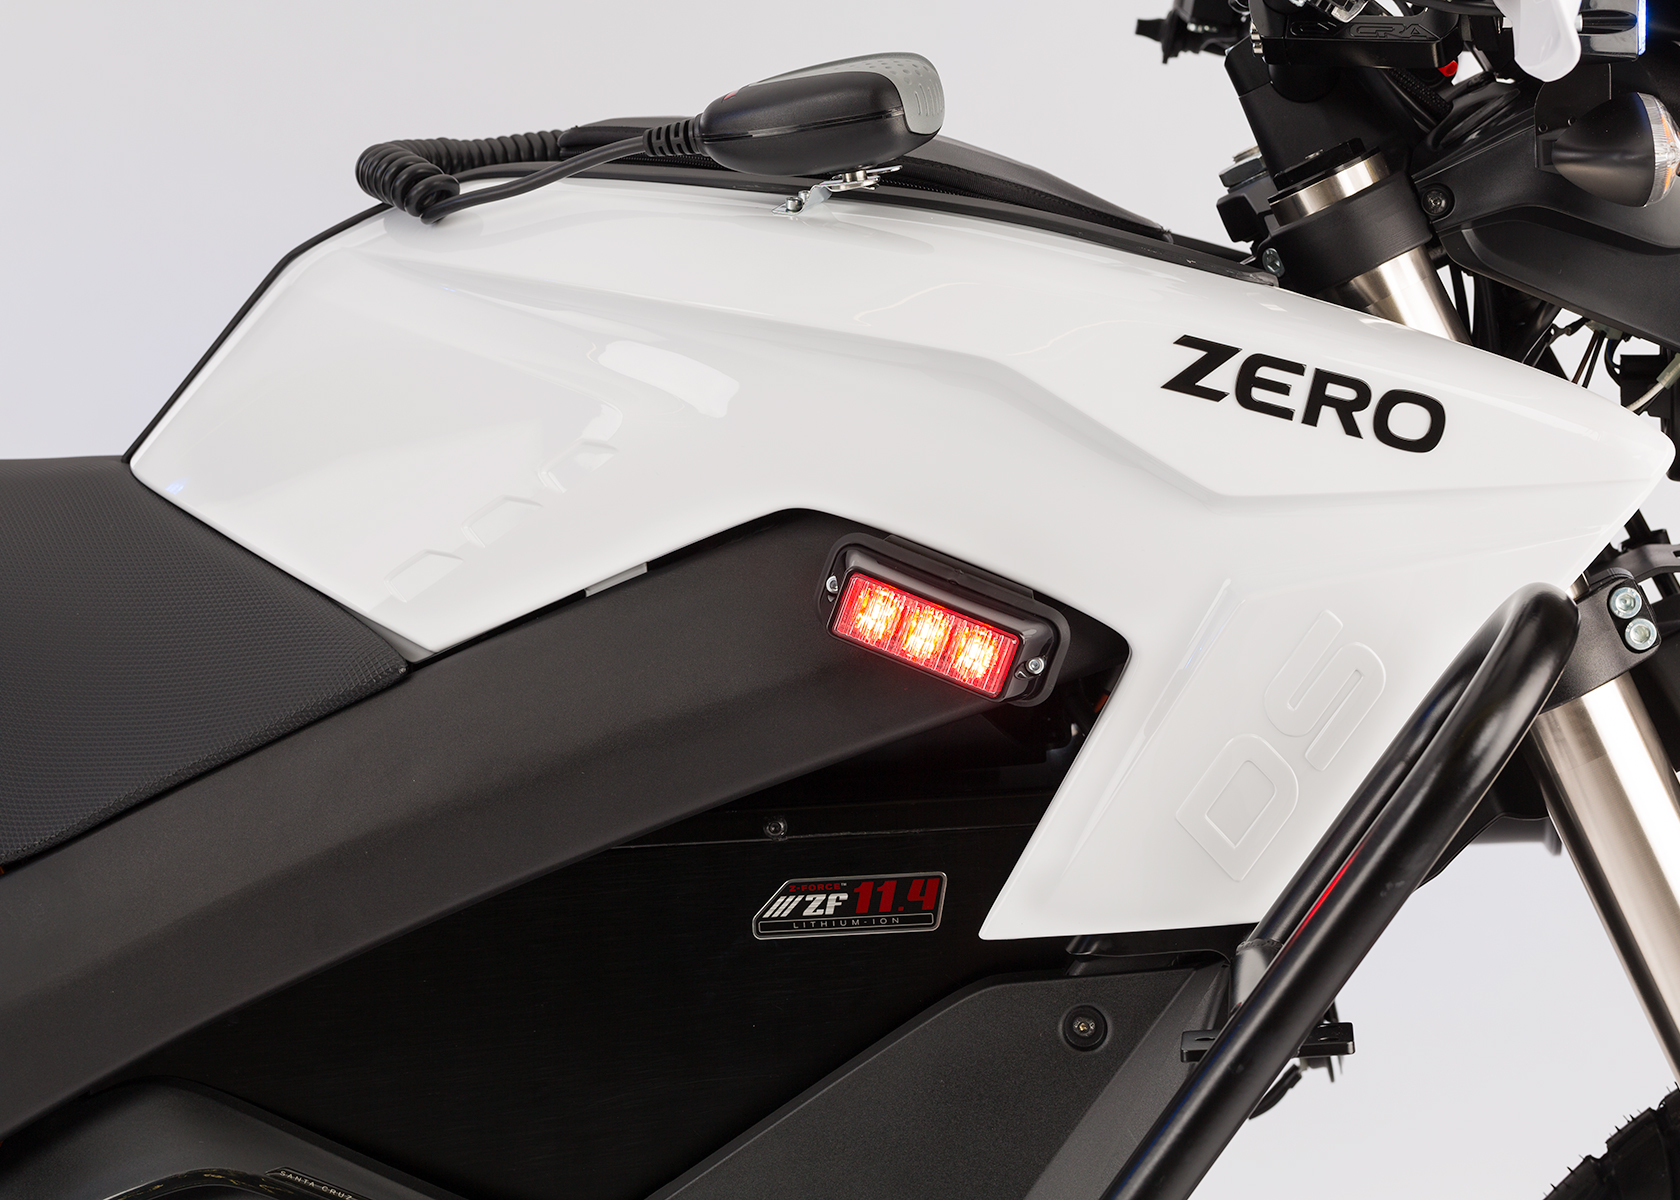 2014 Zero Police Electric Motorcycle: Side Light